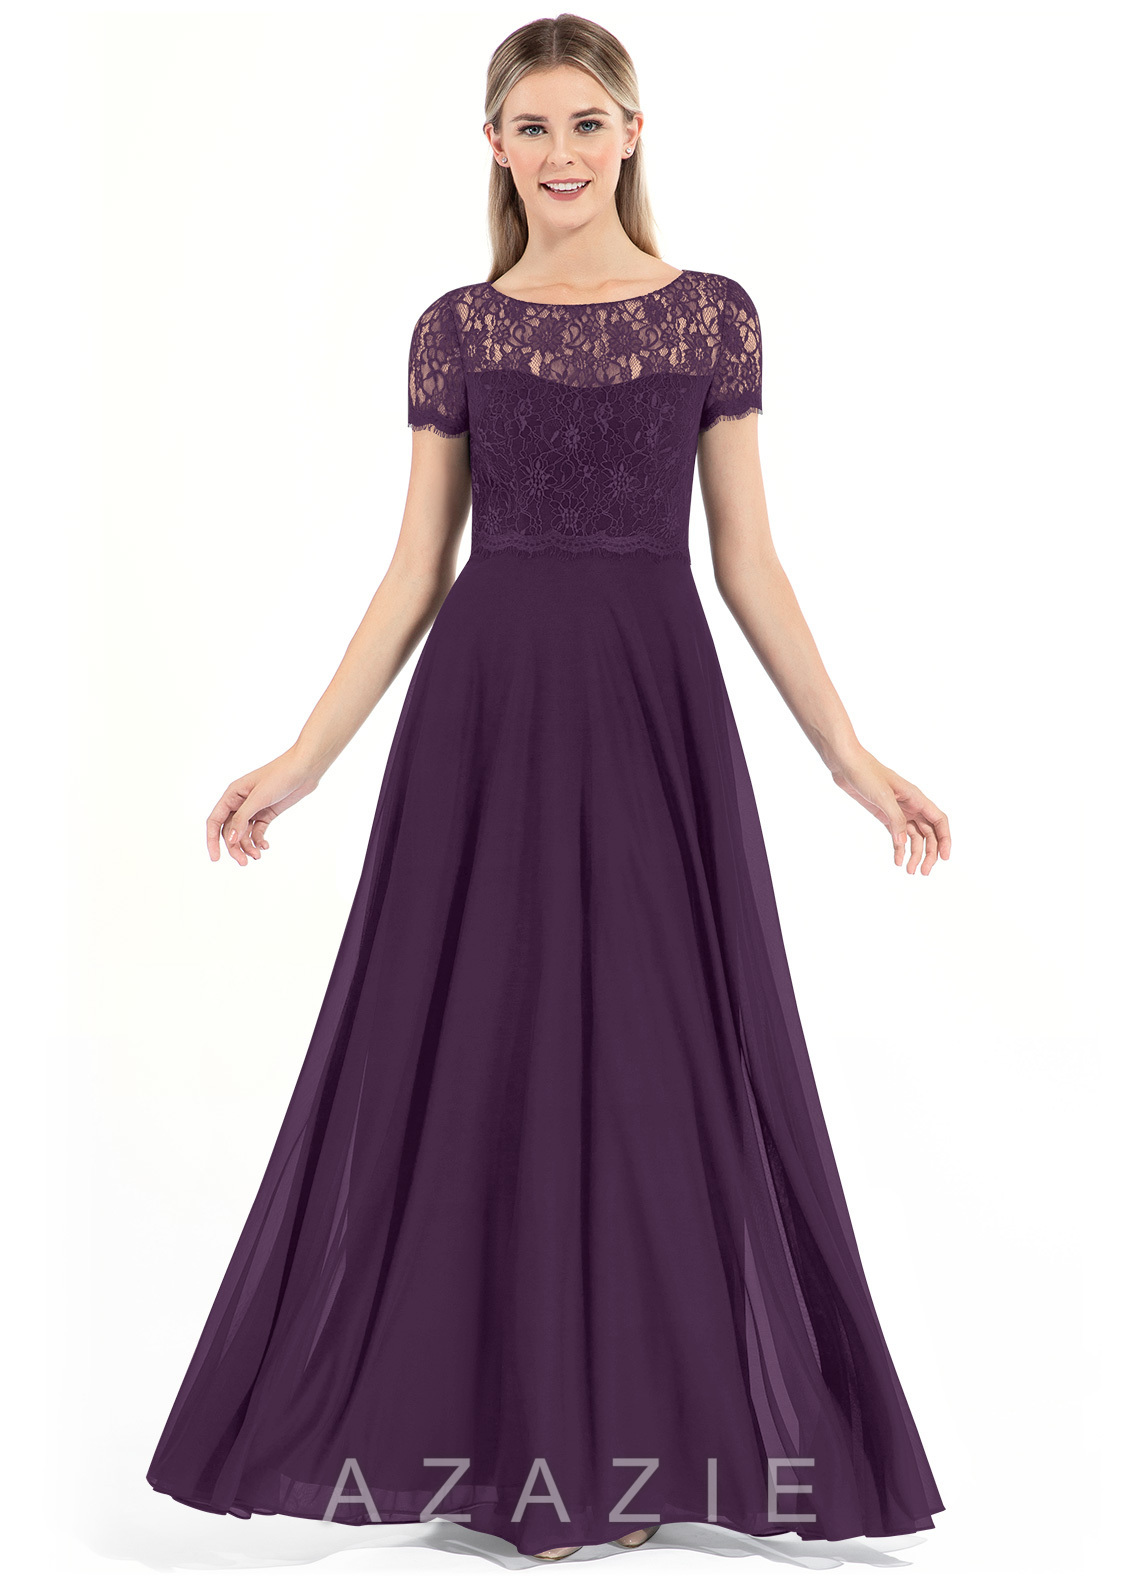 79c4186e4 Azazie Maia Bridesmaid Dress | Azazie